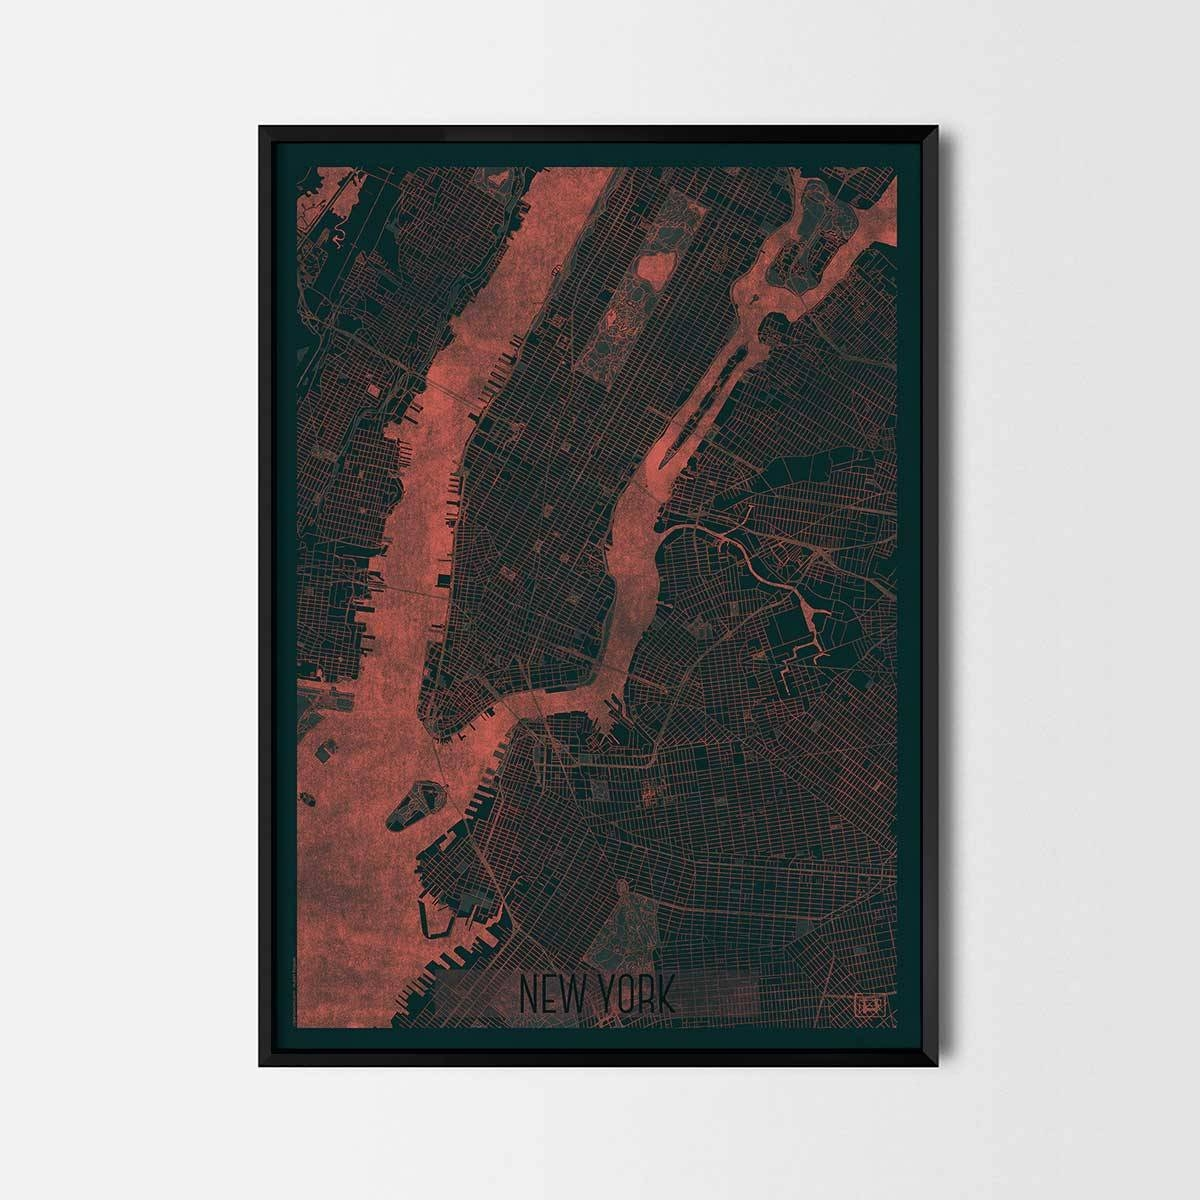 City Art Posters | Map Posters And Art Prints – Gifts For City With Most Current City Prints Map Wall Art (View 6 of 20)